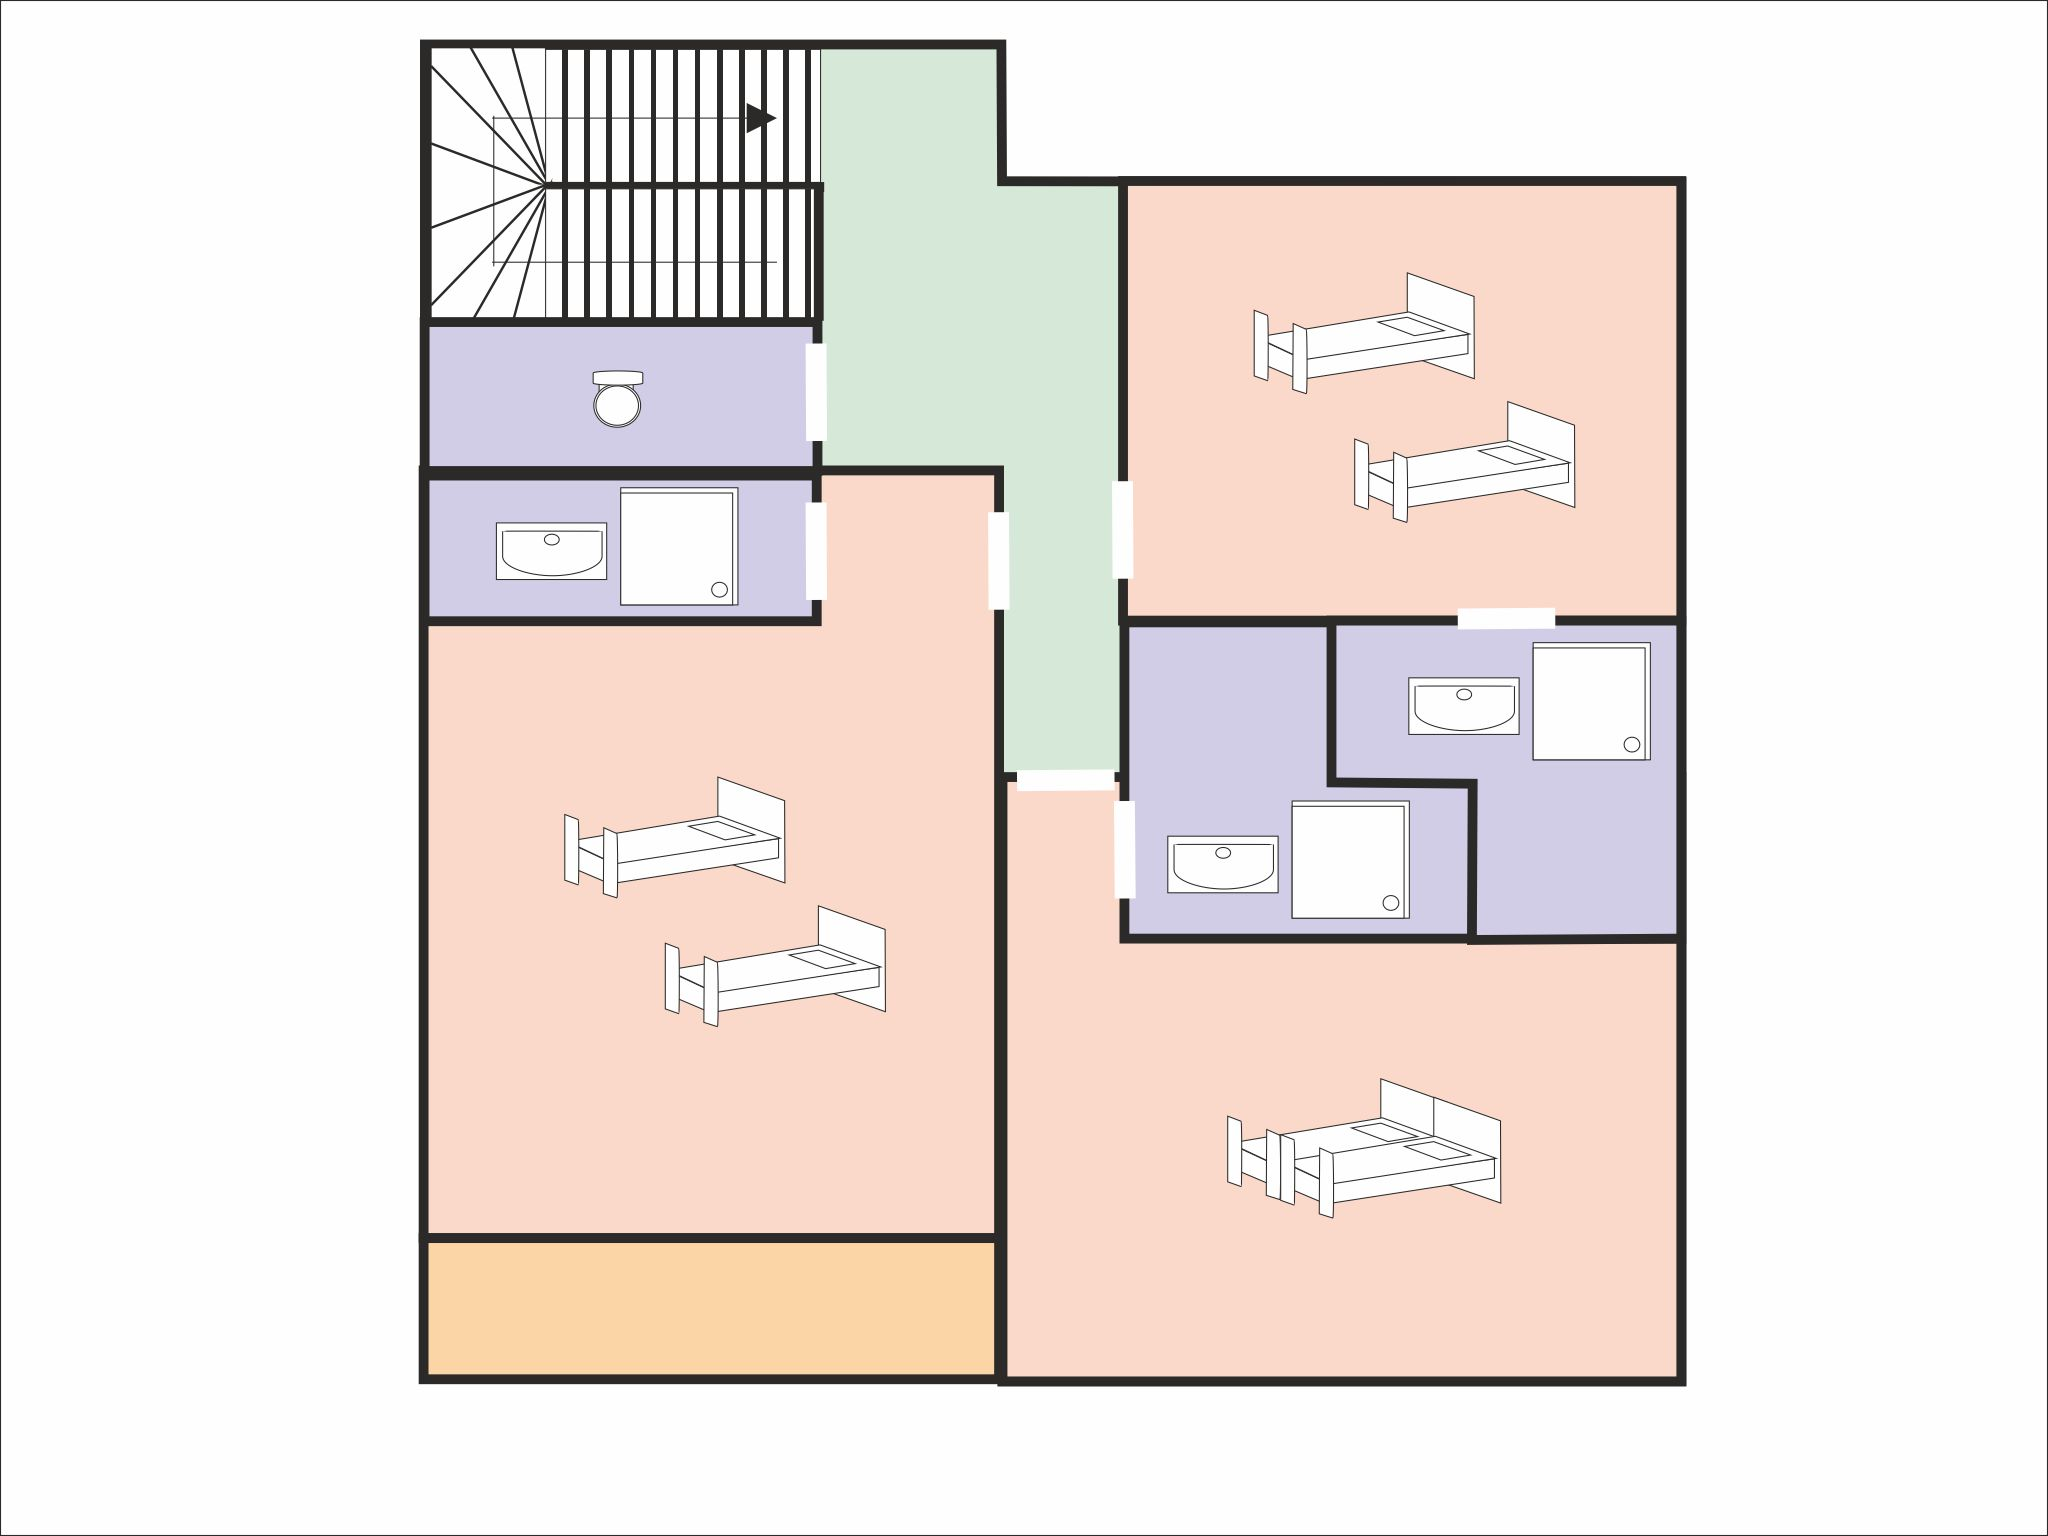 Chalet Bettaix CLI01 - floor plan - level 2